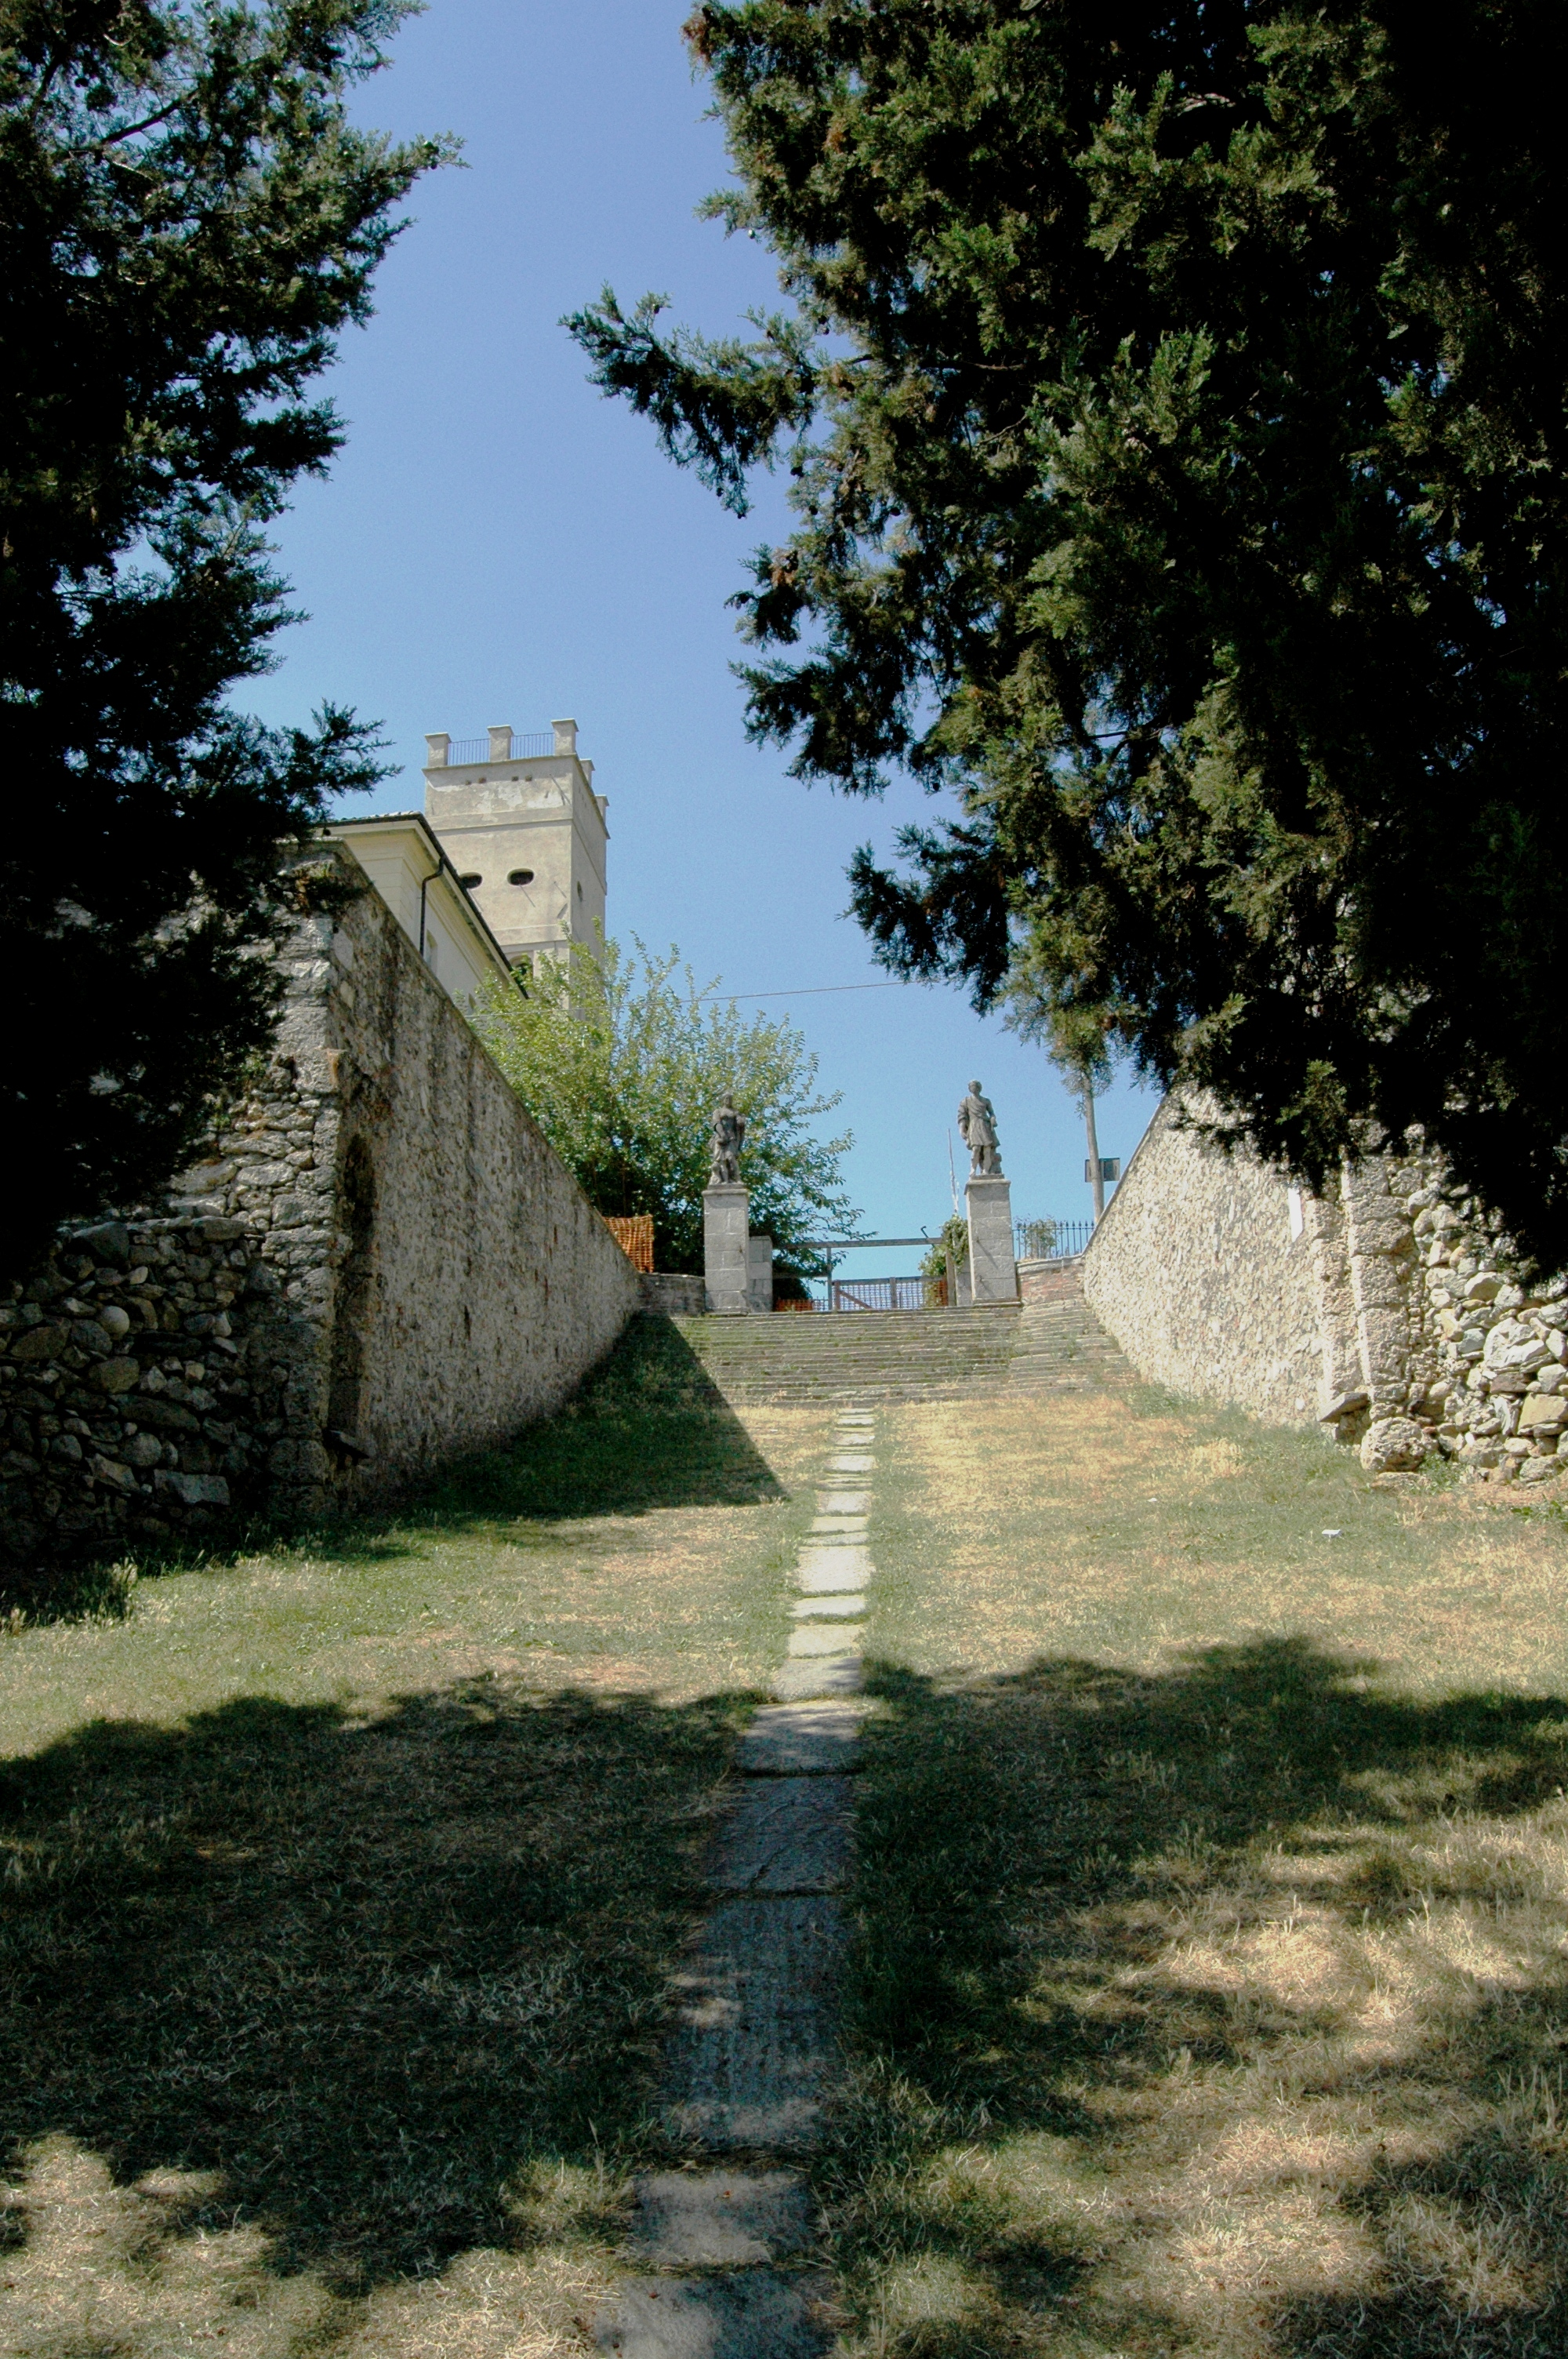 Inverigo (CO), Castello Crivelli